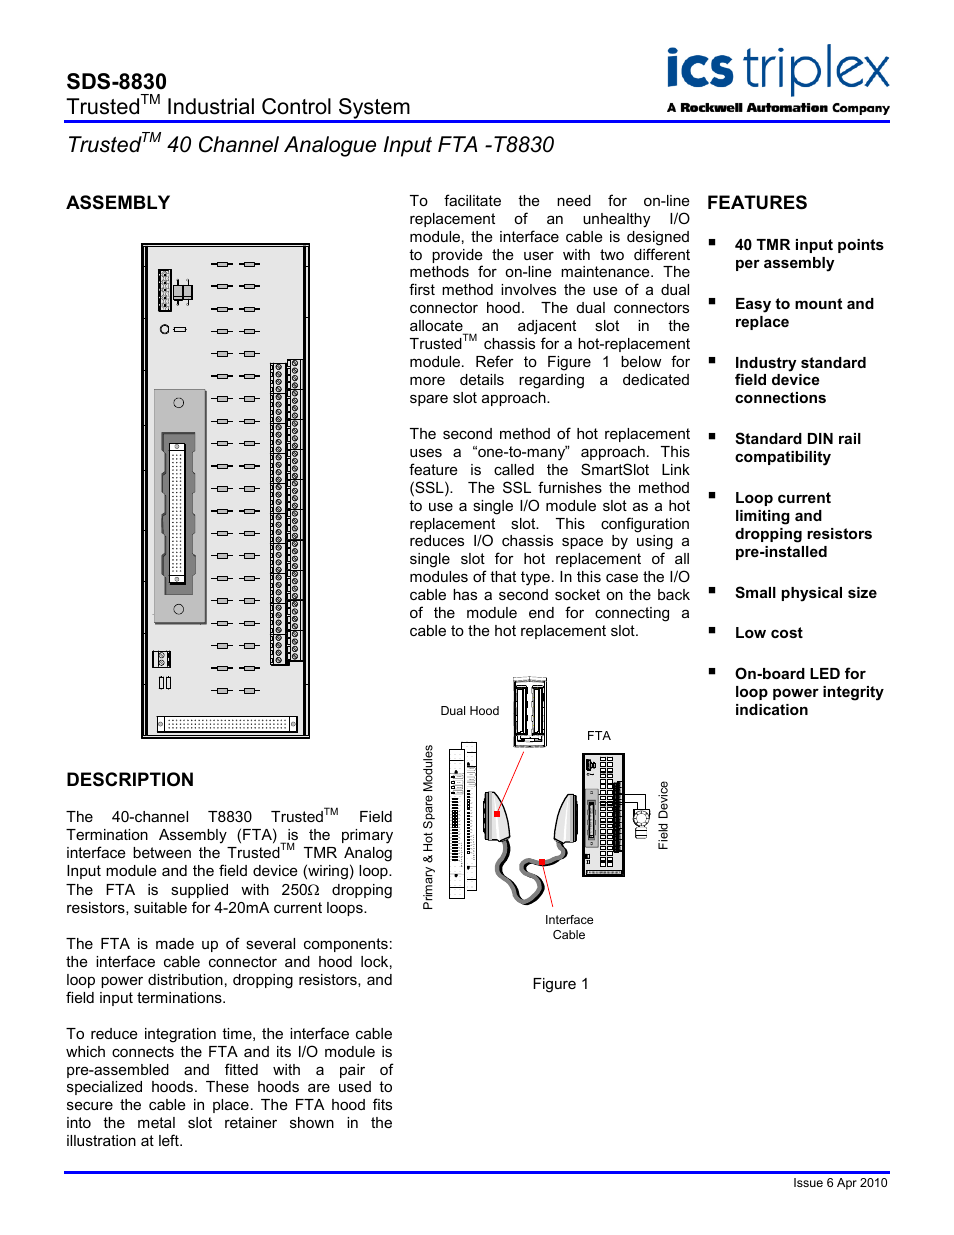 Rockwell Automation T8830 Trusted 40 Channel Analogue Input Fta User Industrial Wiring Diagram Honeywell Manual 2 Pages